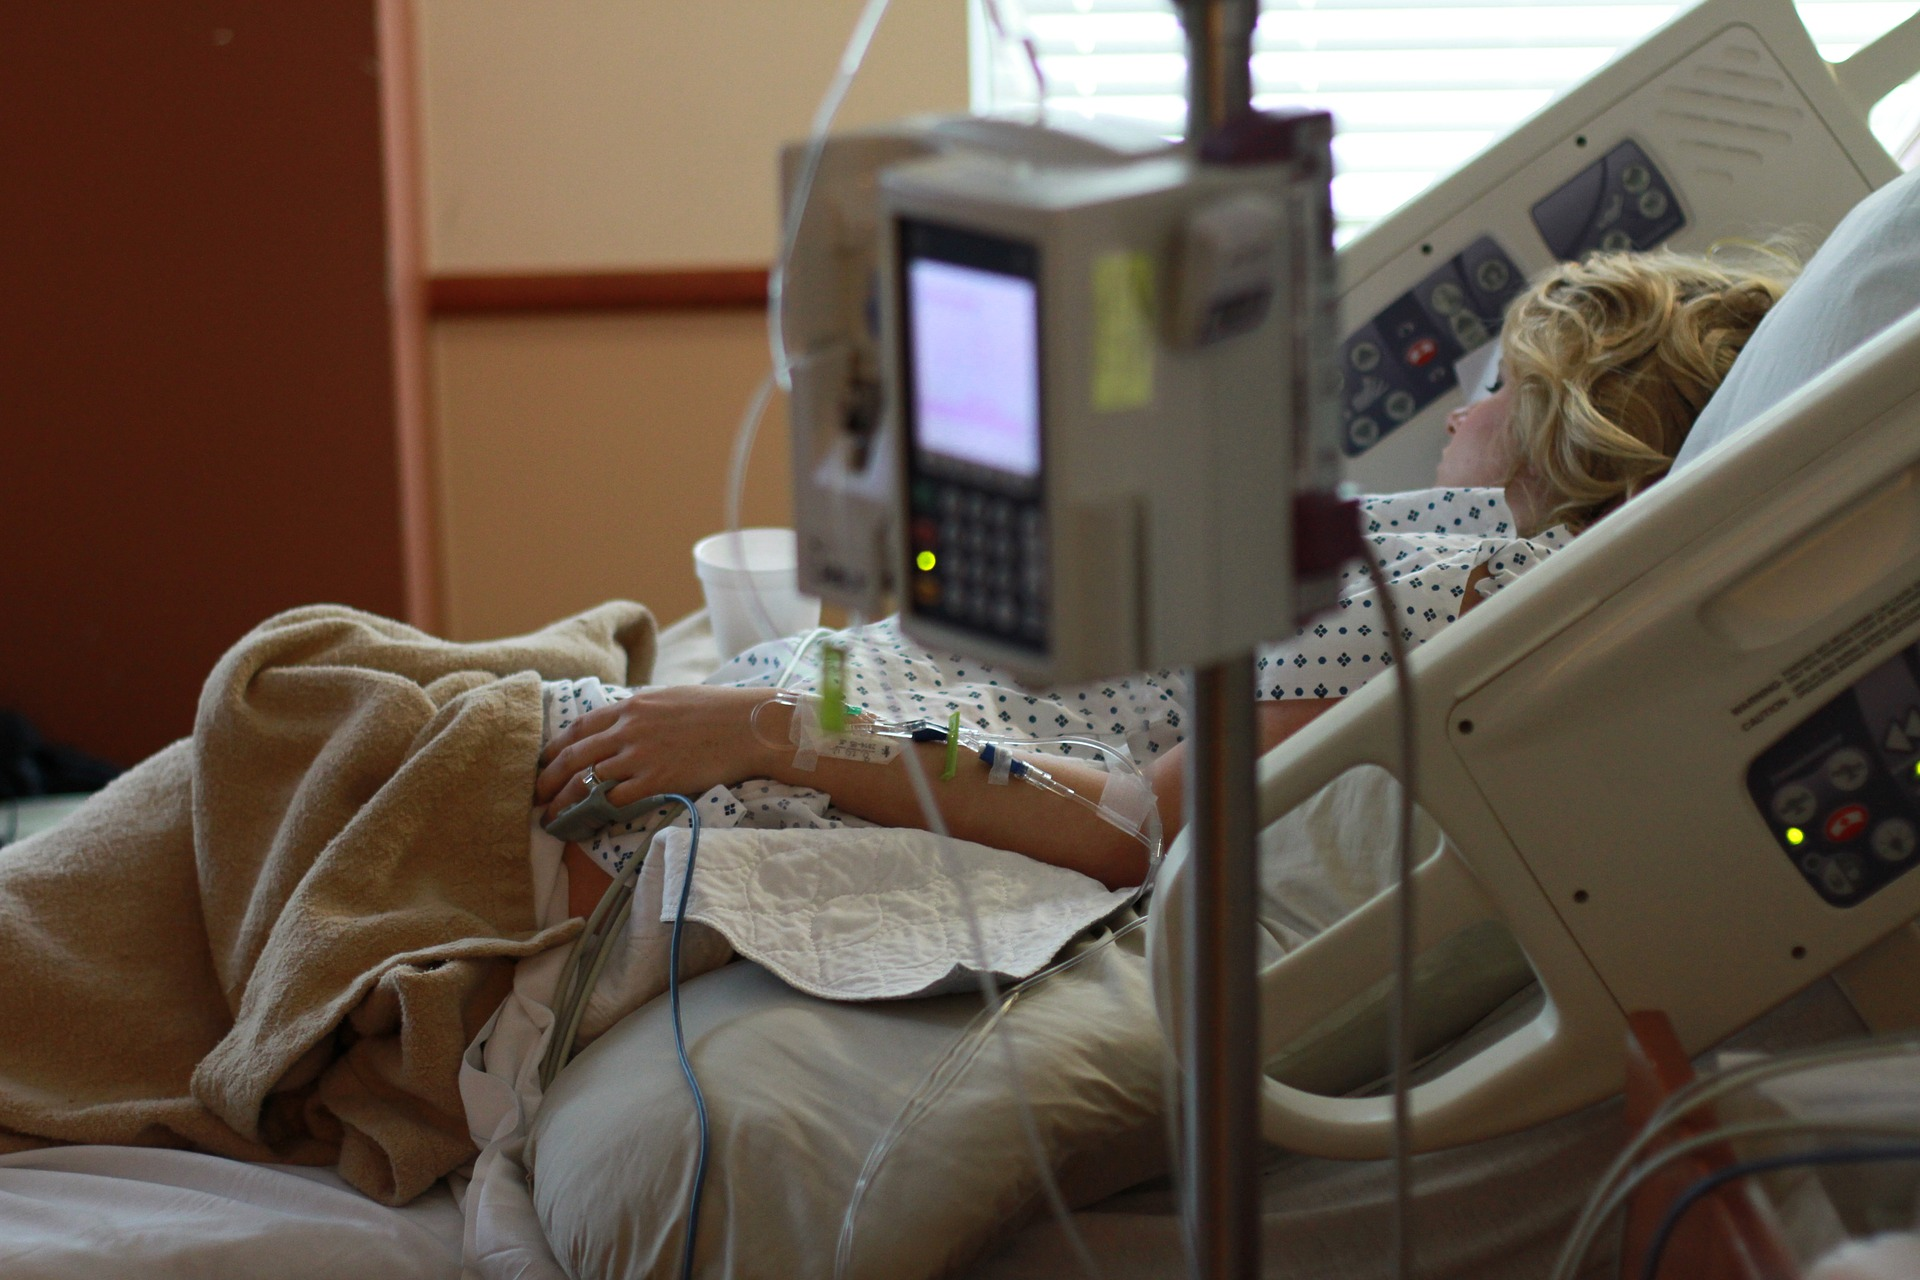 woman in a hospital bed with IV tubes and an IV pole